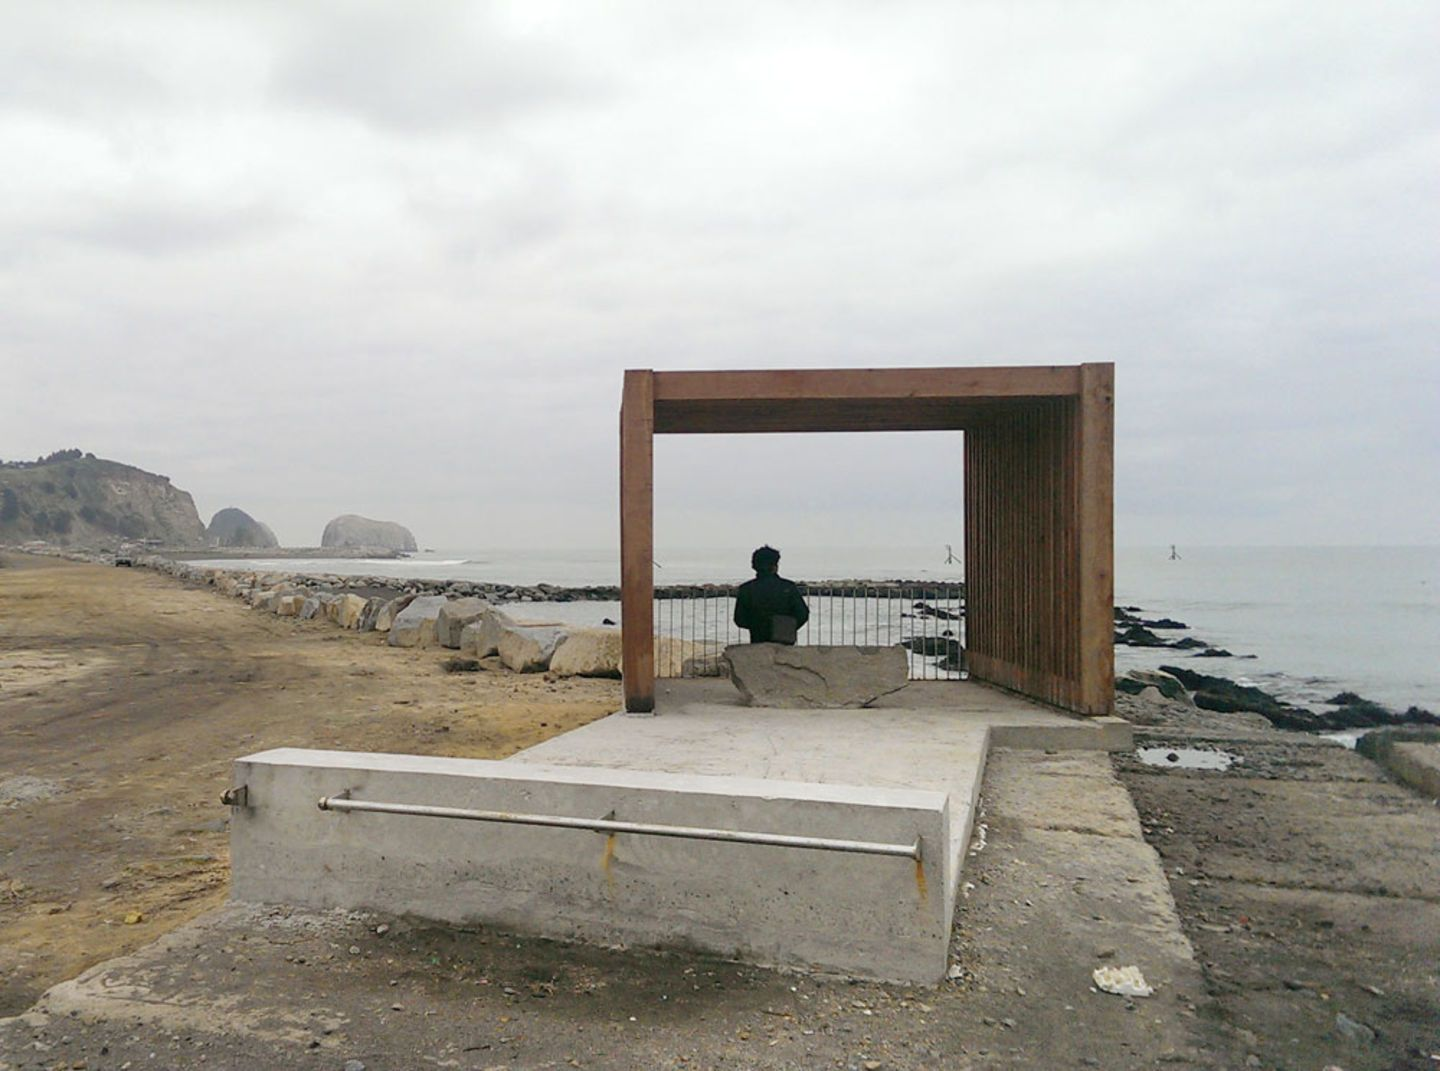 Developed in the context of the Post-tsunami Sustainable Reconstruction Plan (PRES) of Constitución, the project consists of a series of coastal lookout points along the way from Maule River's mouth (downtown) to Maguellines Port, in order to reinforce...